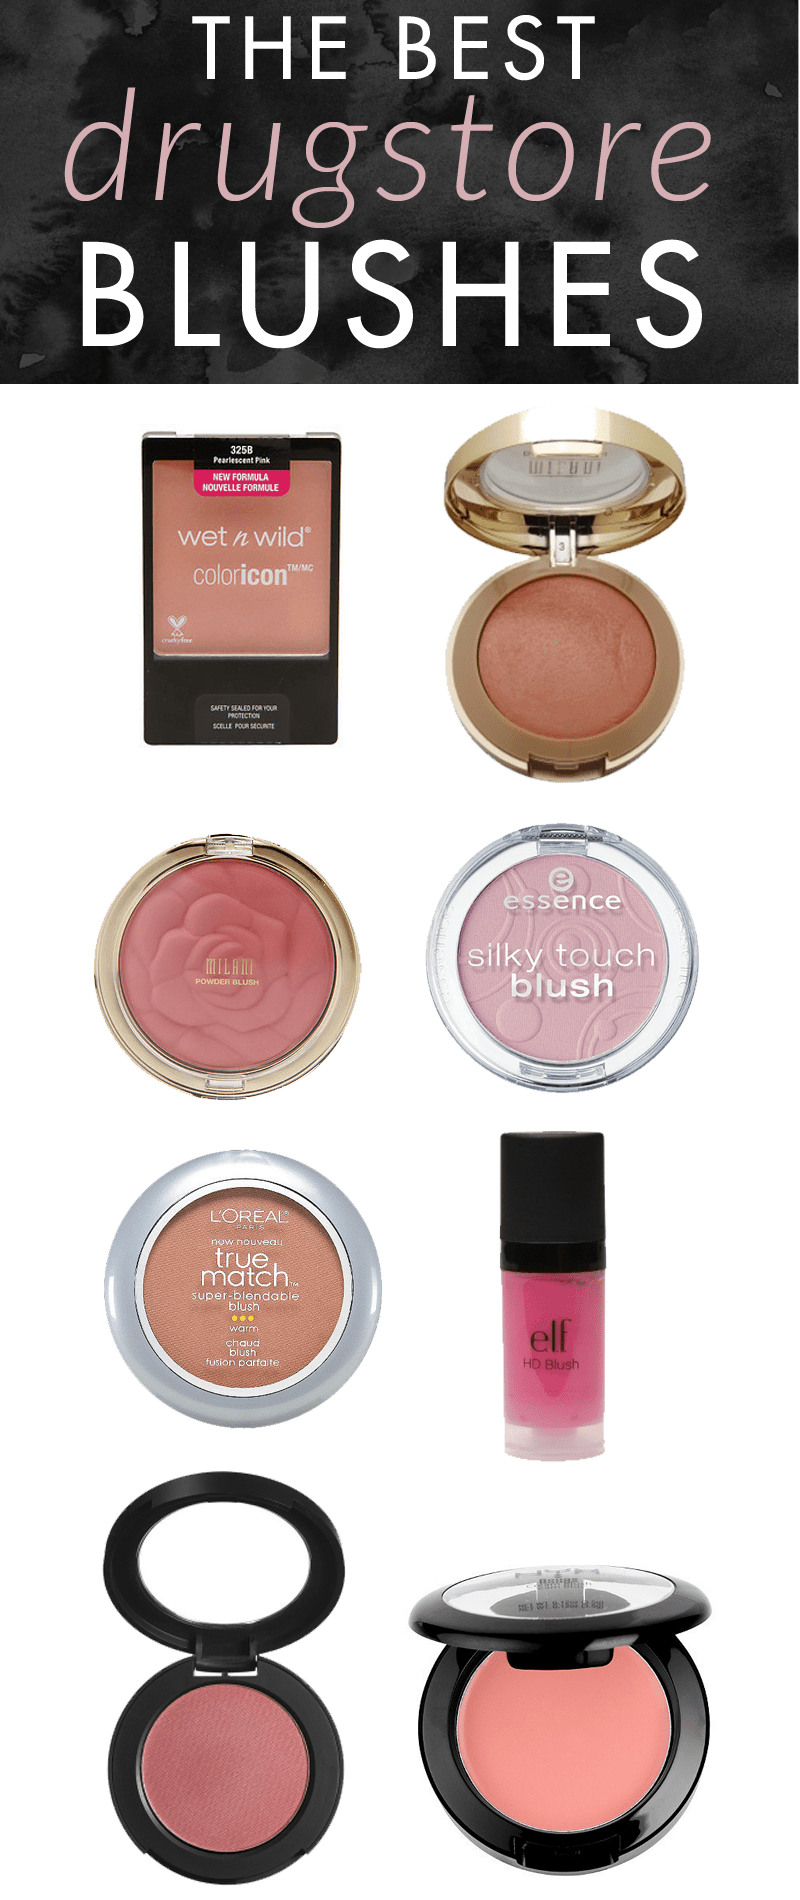 The Best Drugstore Blushes by popular beauty blogger Meg O. on the Go